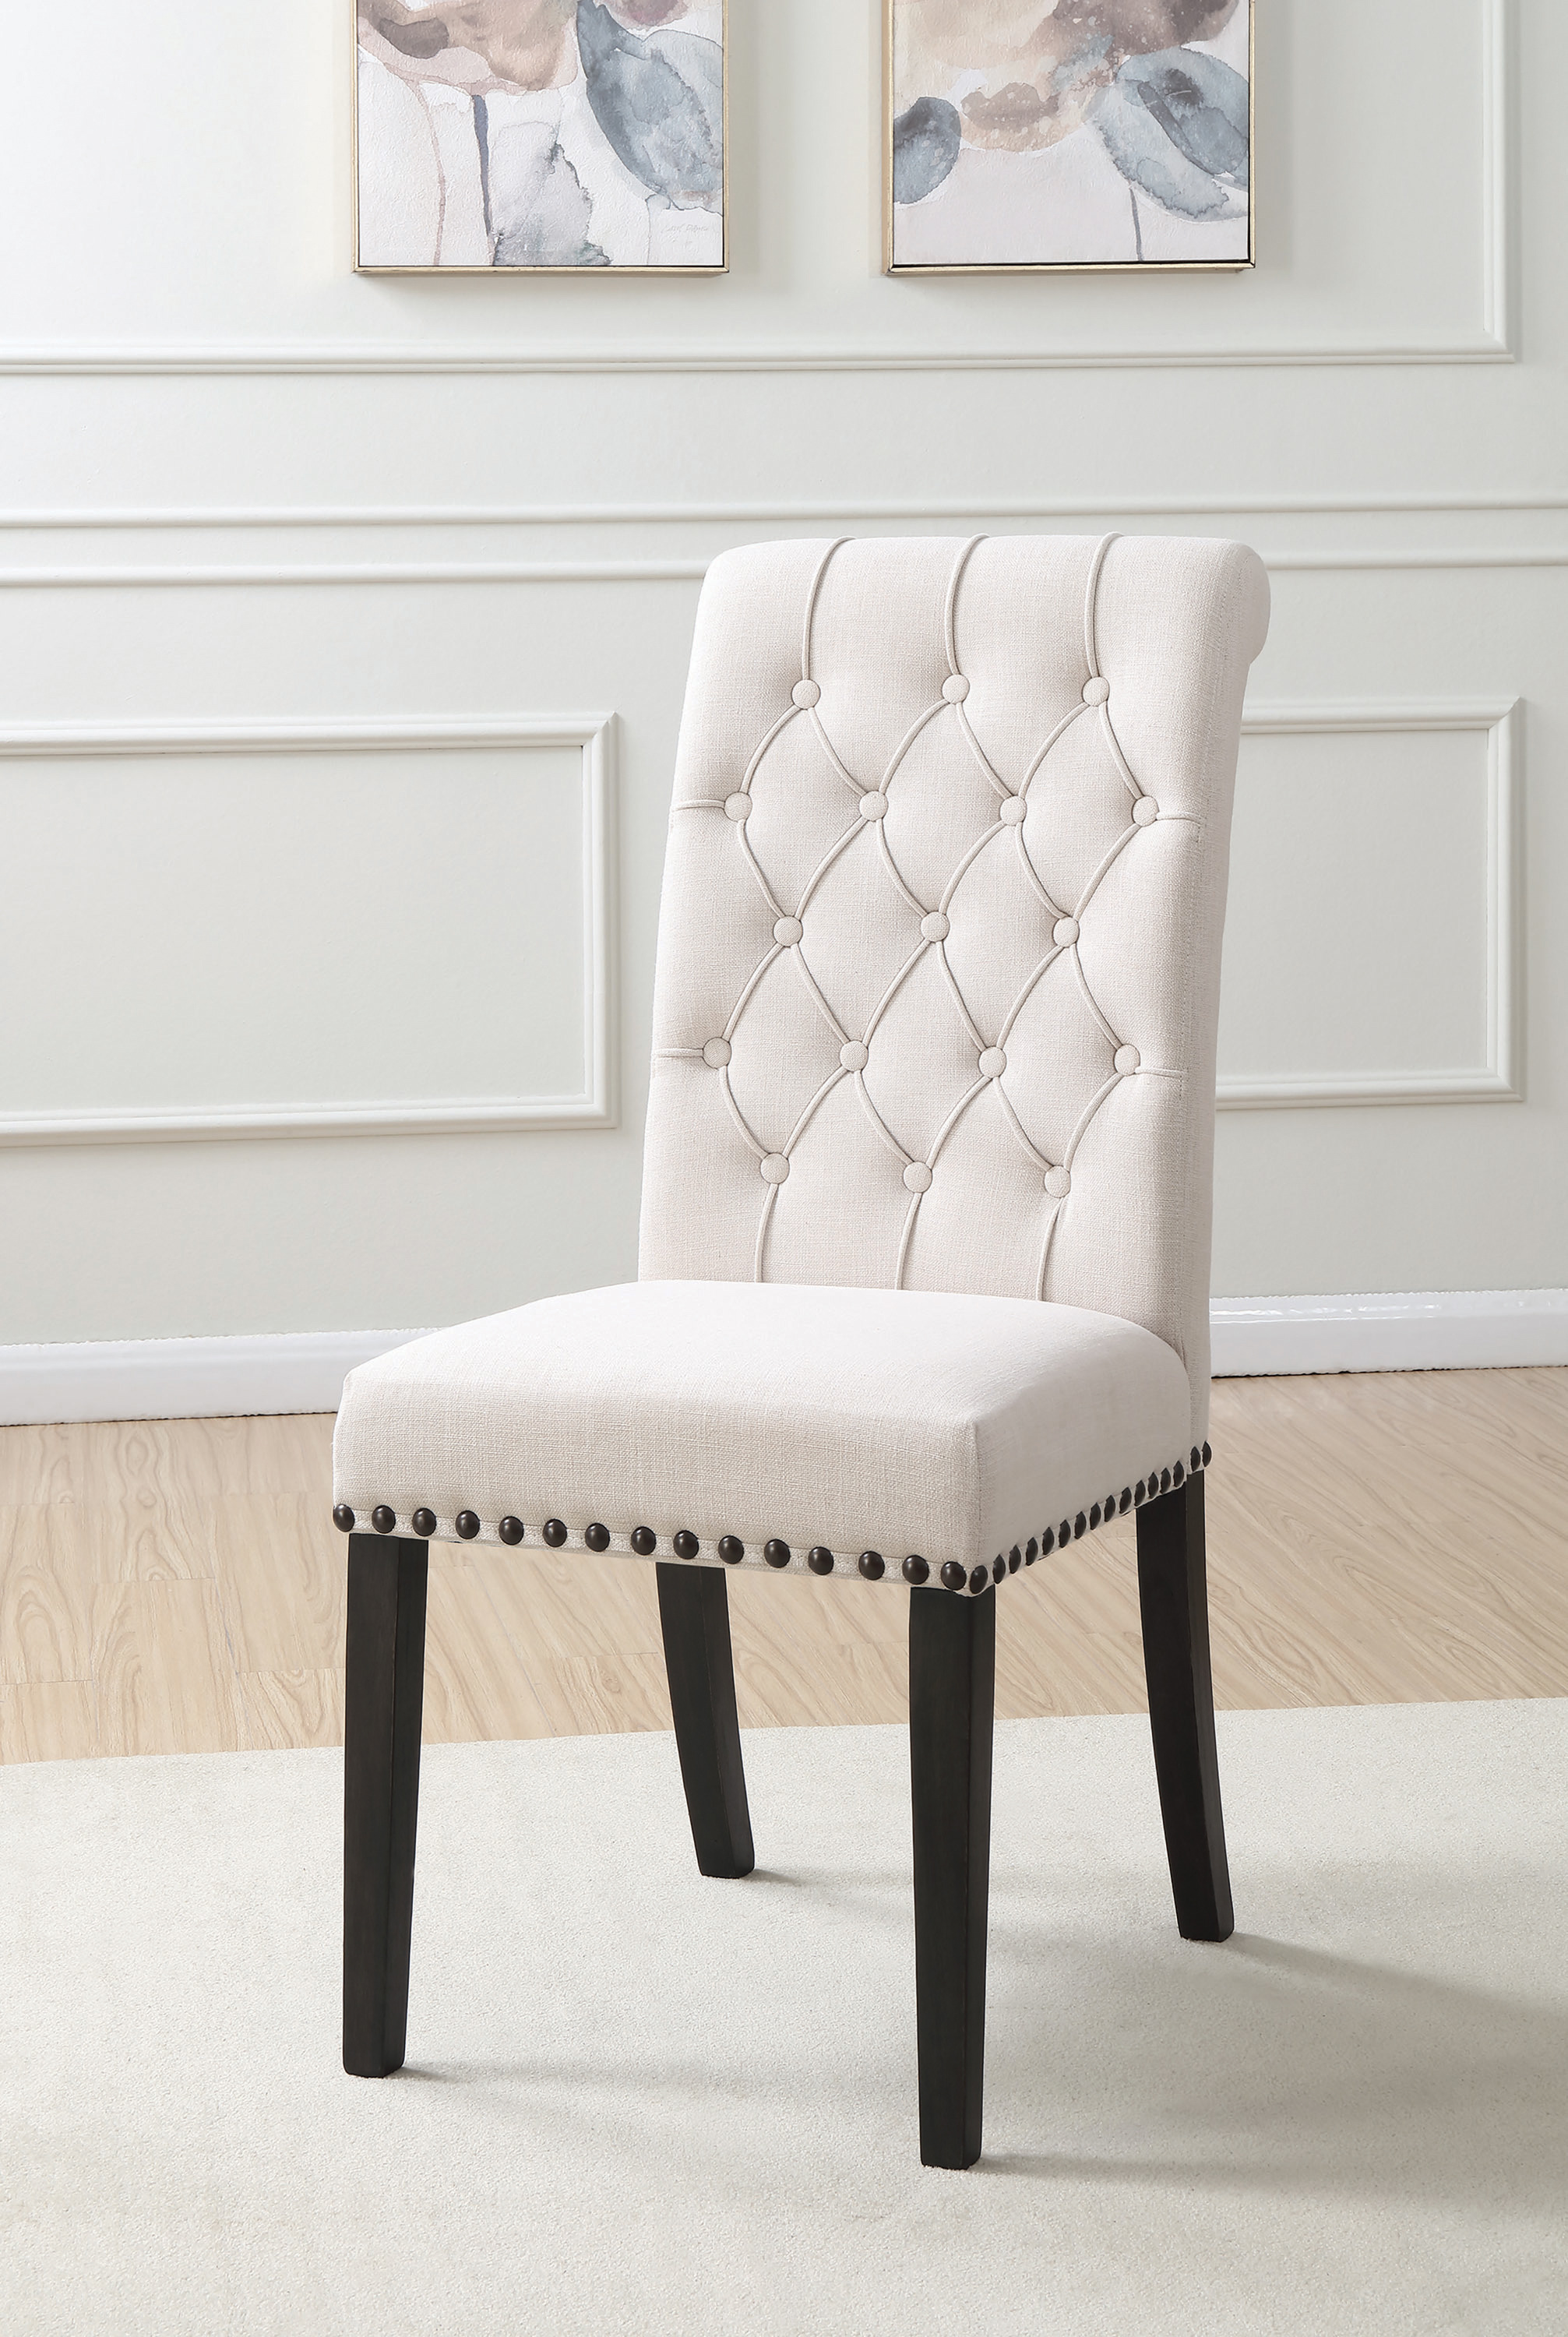 Coaster Fine Furniture Antique Linens Luxury Phelps Upholstered Side Chairs Beige and Smokey Black Set